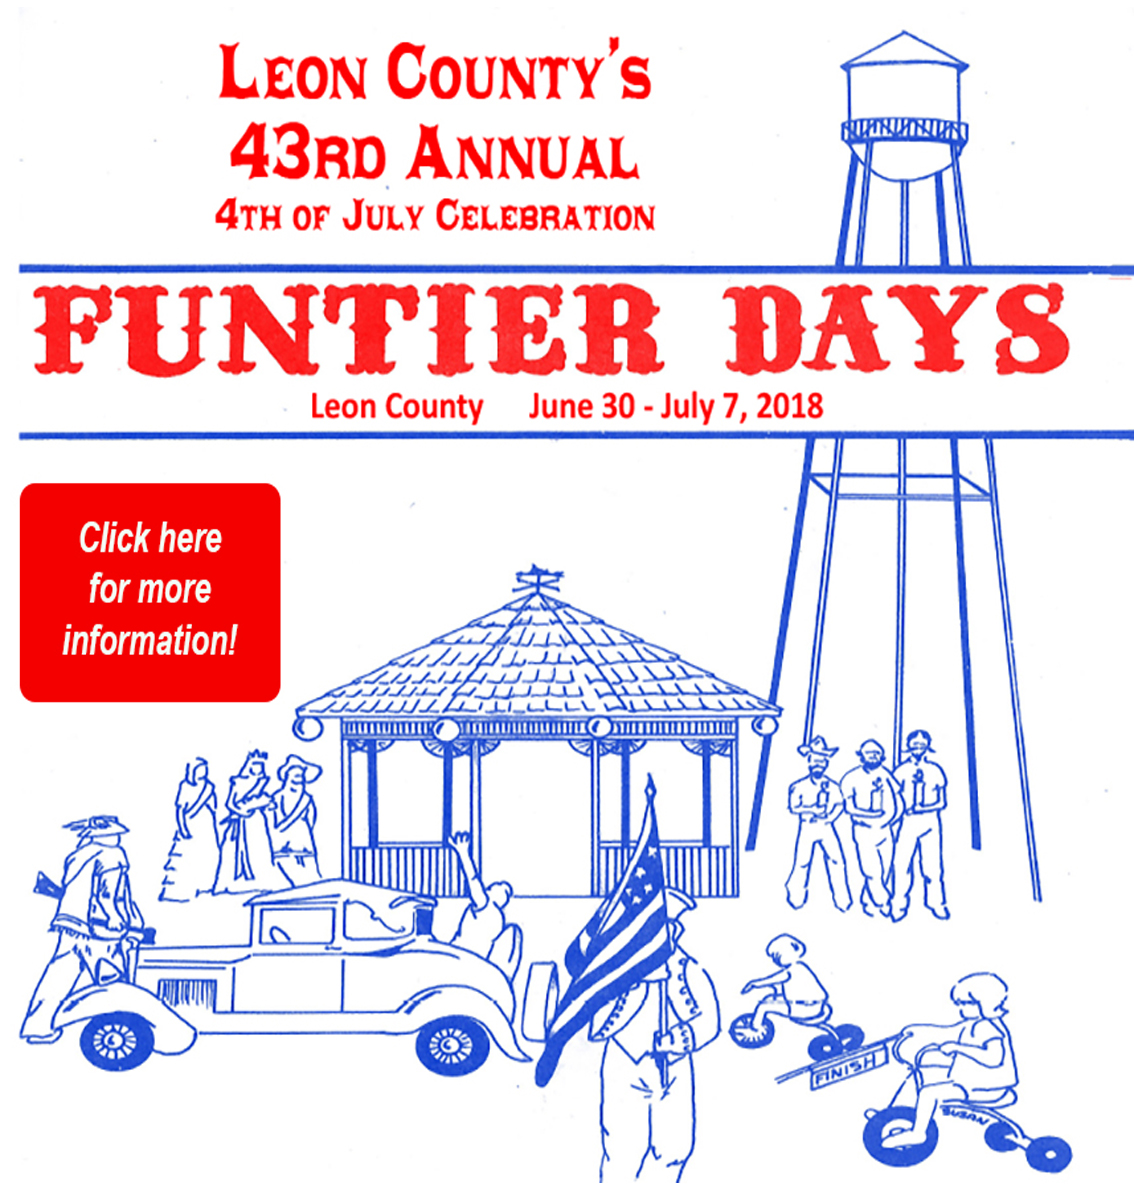 Leon-County-Funtier-Day-web-ad.jpg